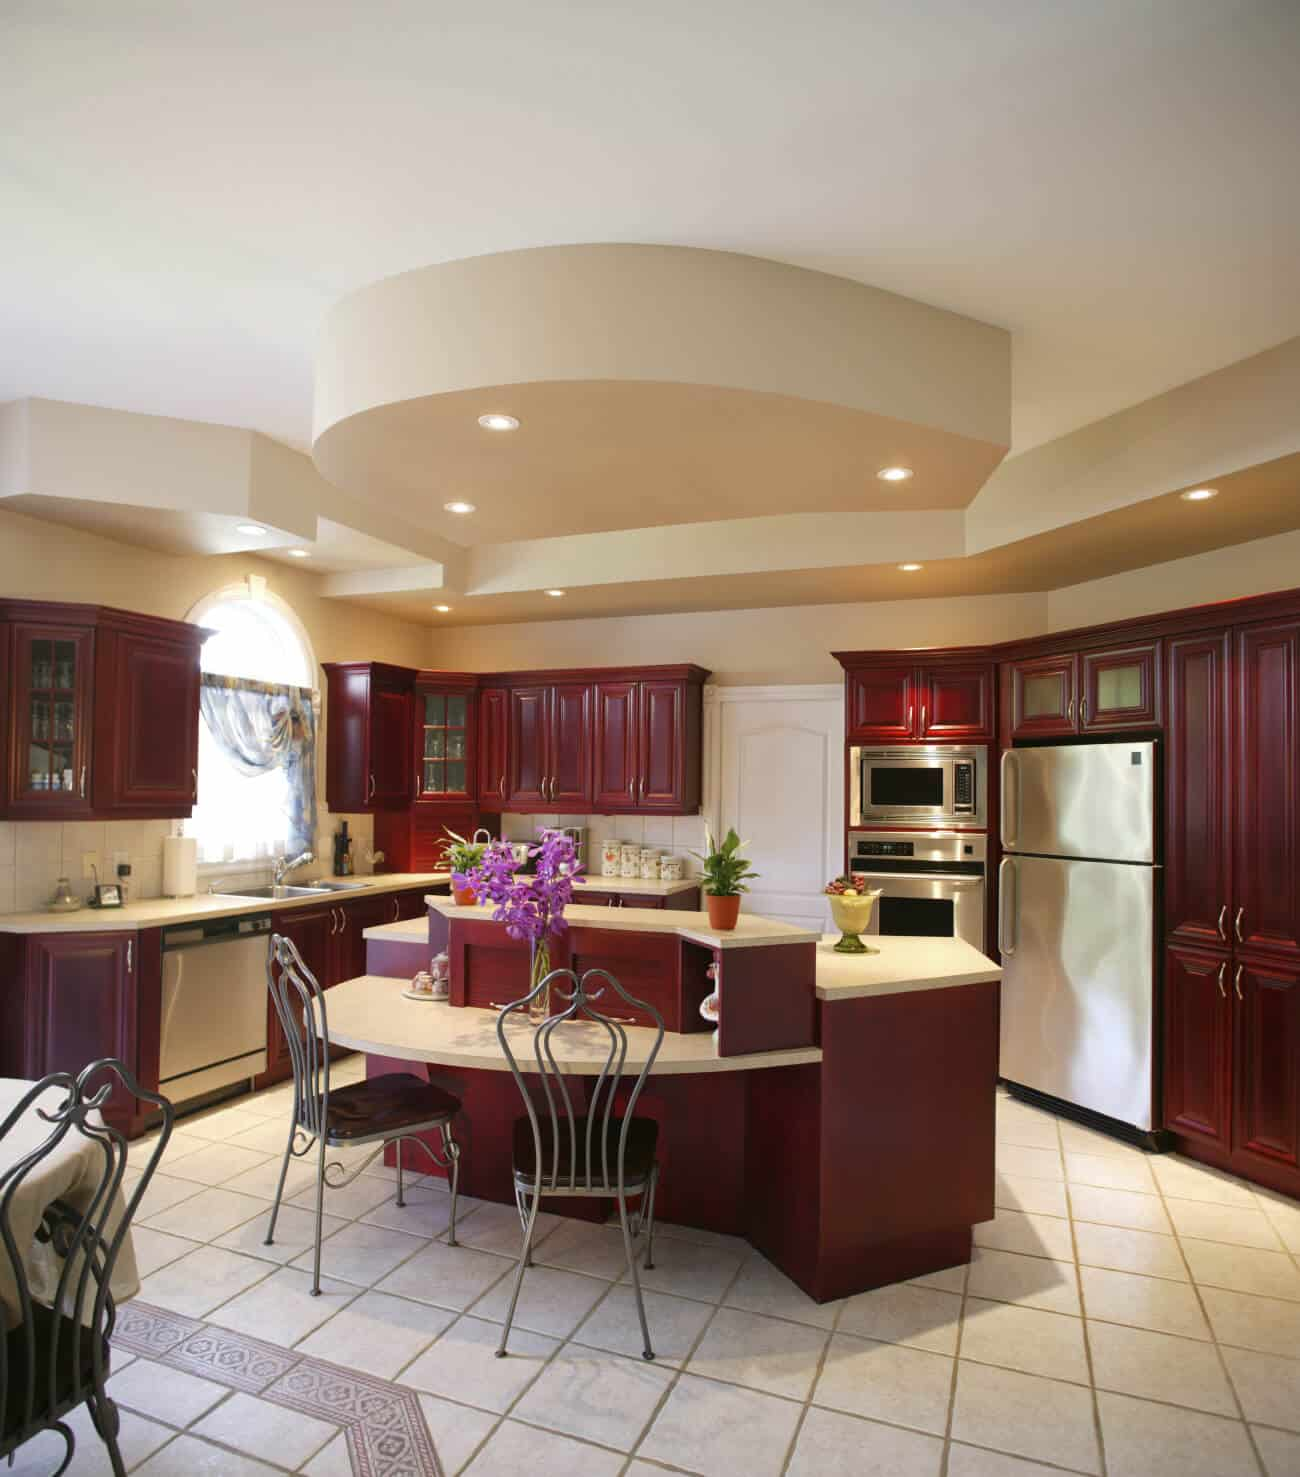 Red Wood Features Heavily In This Kitchen, Contrasting With Light Beige  Tile Flooring And Countertops